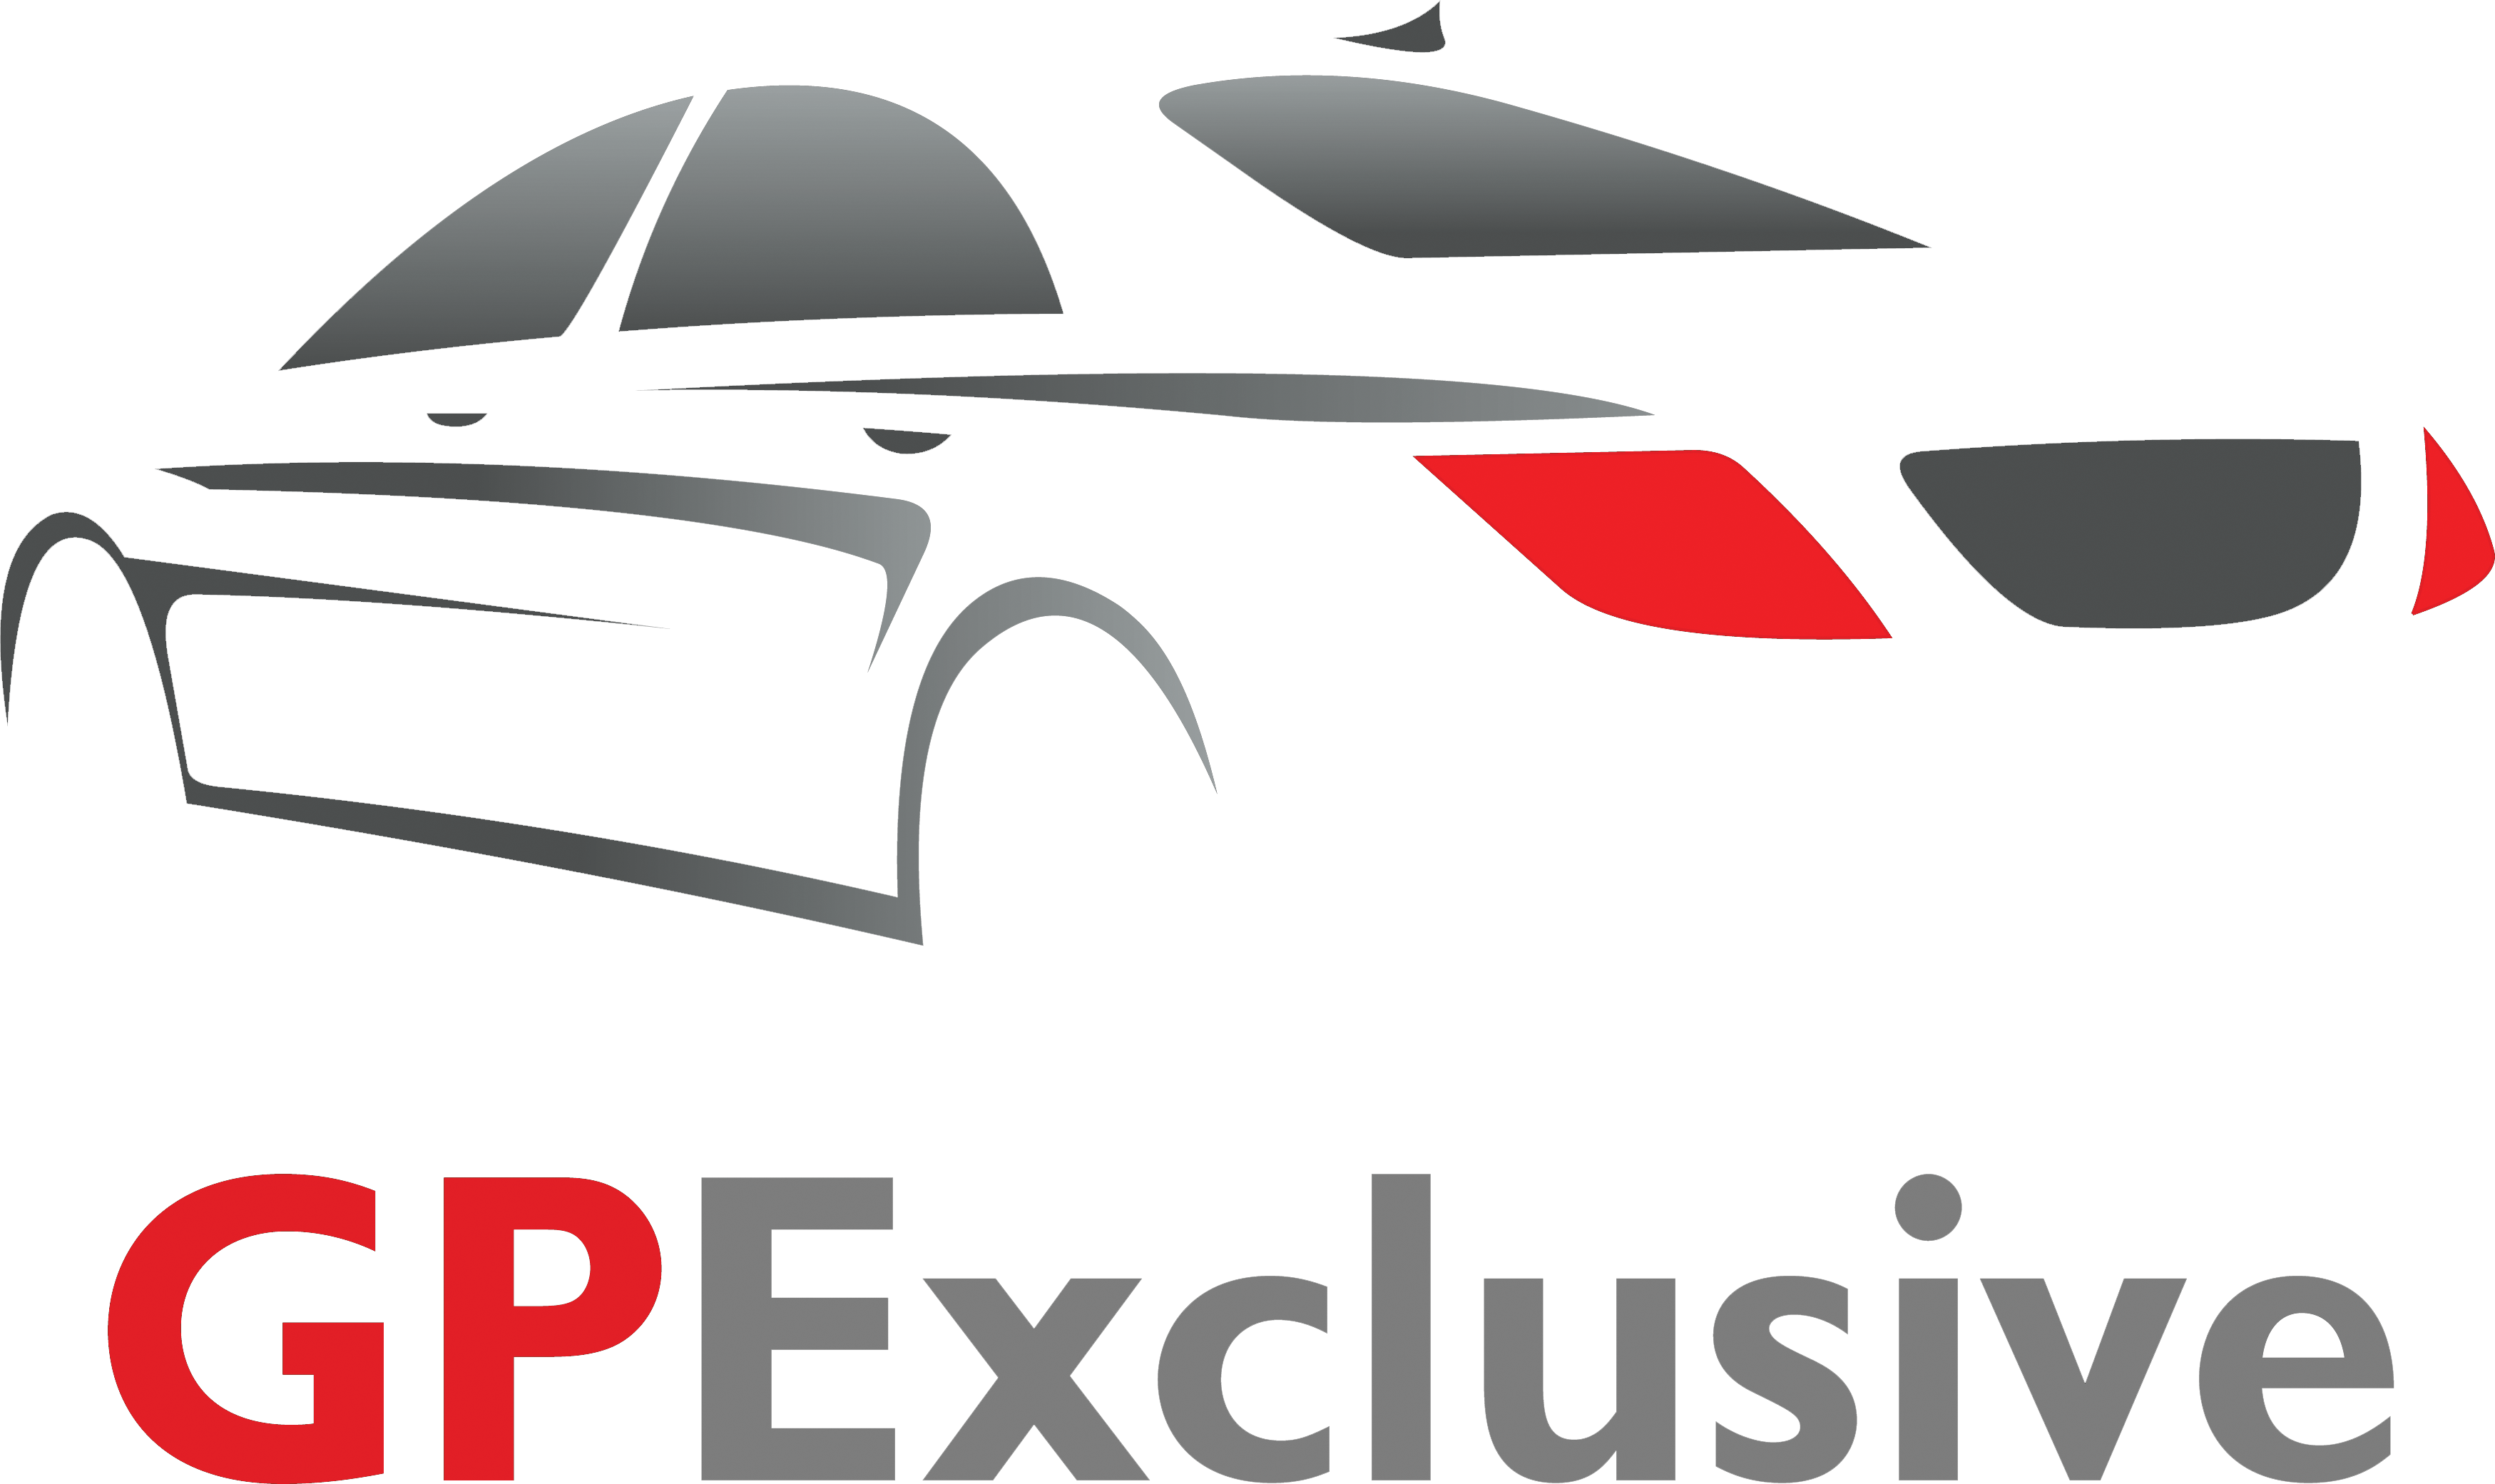 GP Exclusive logo